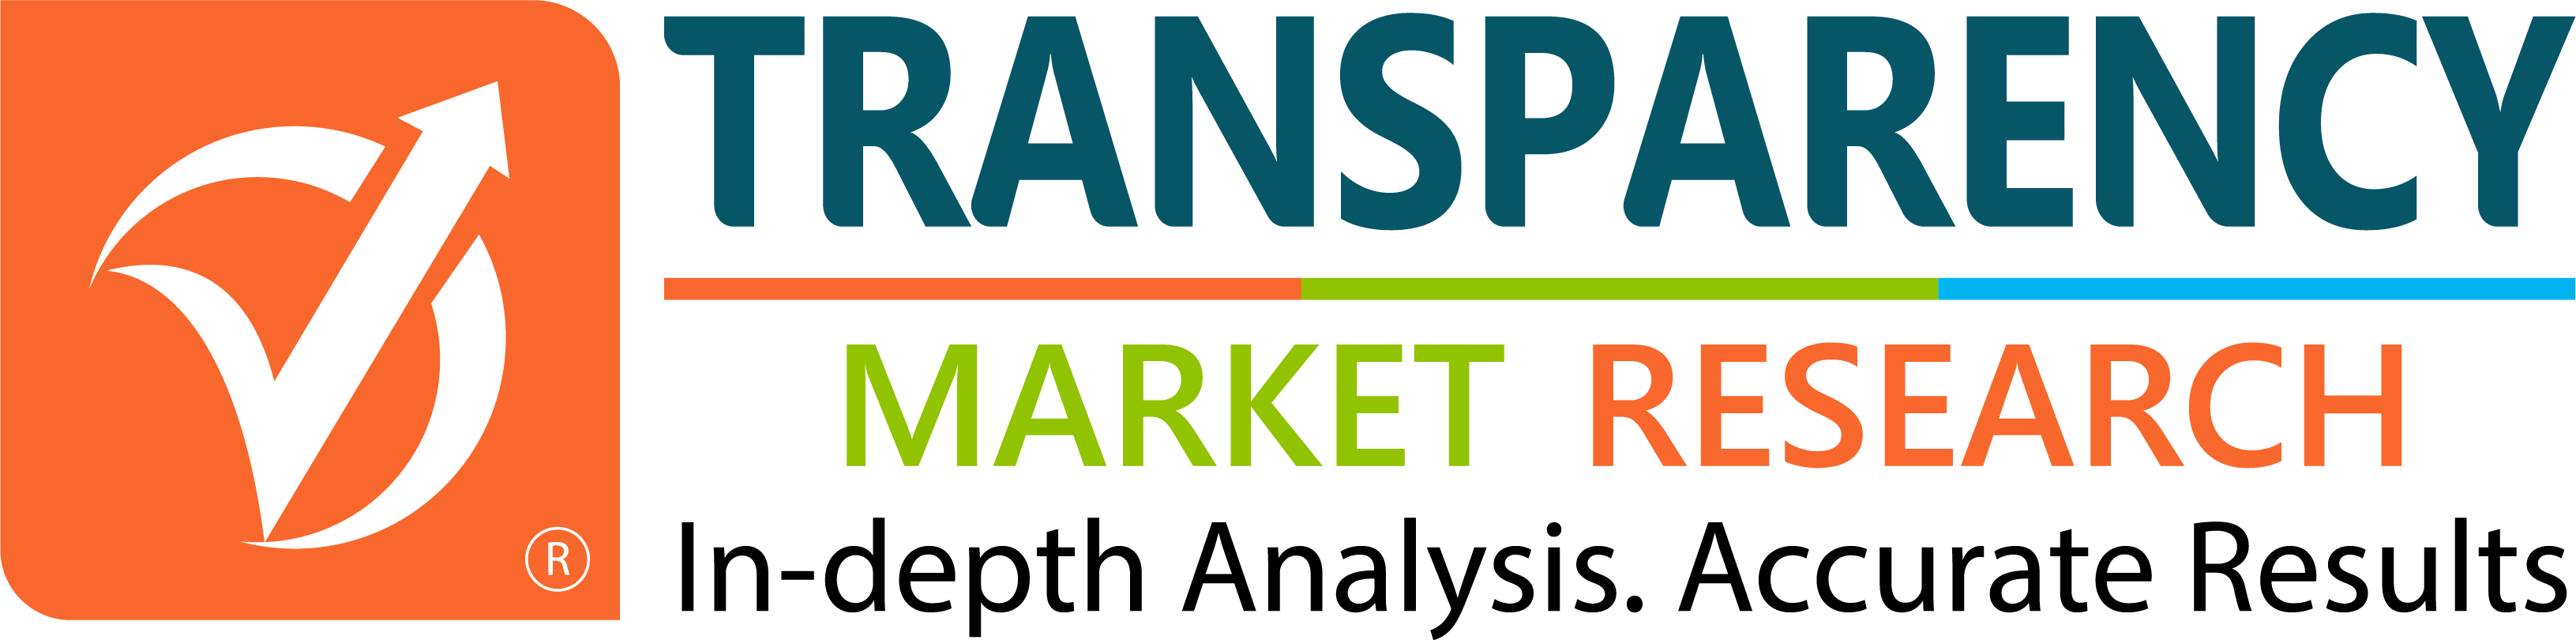 Hyperbaric Oxygen Therapy Devices Market Value to Hit US$284.8 Mn by 2025, at CAGR of 7.4% | Say's TMR